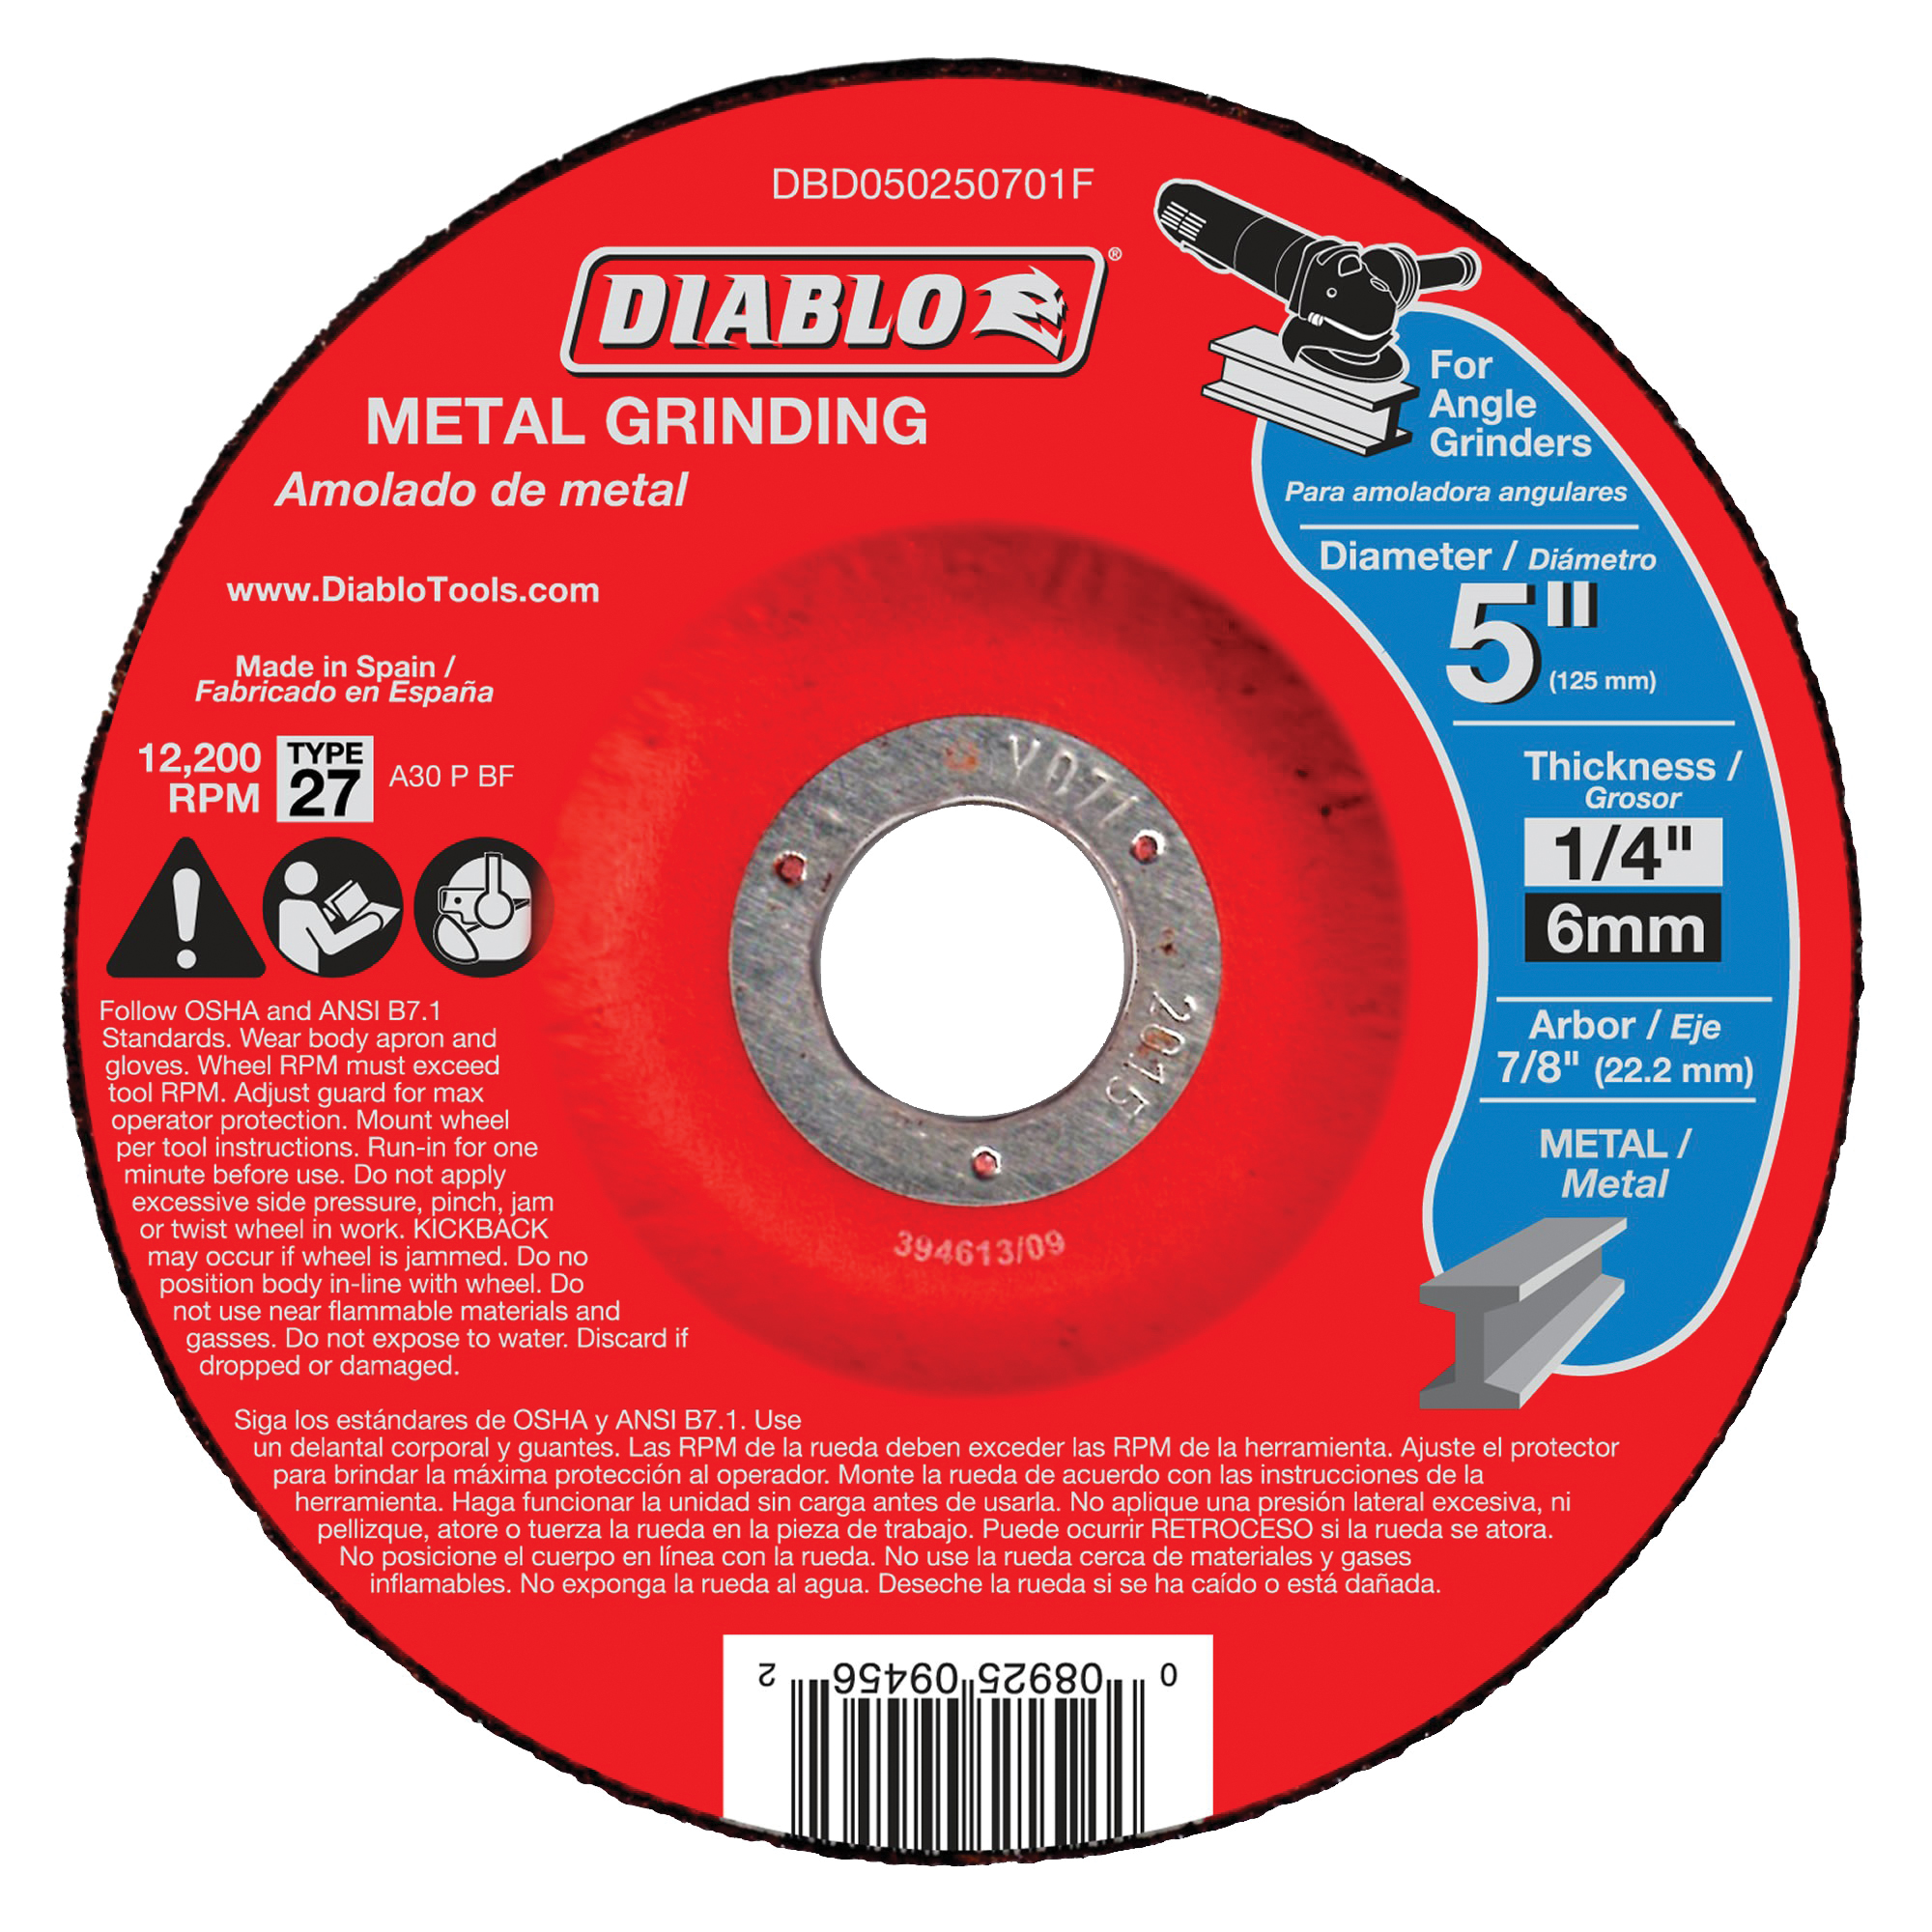 Picture of Diablo DBD050250701F Grinding Wheel, 5 in Dia, 1/4 in Thick, 7/8 in Arbor, Aluminum Oxide Abrasive